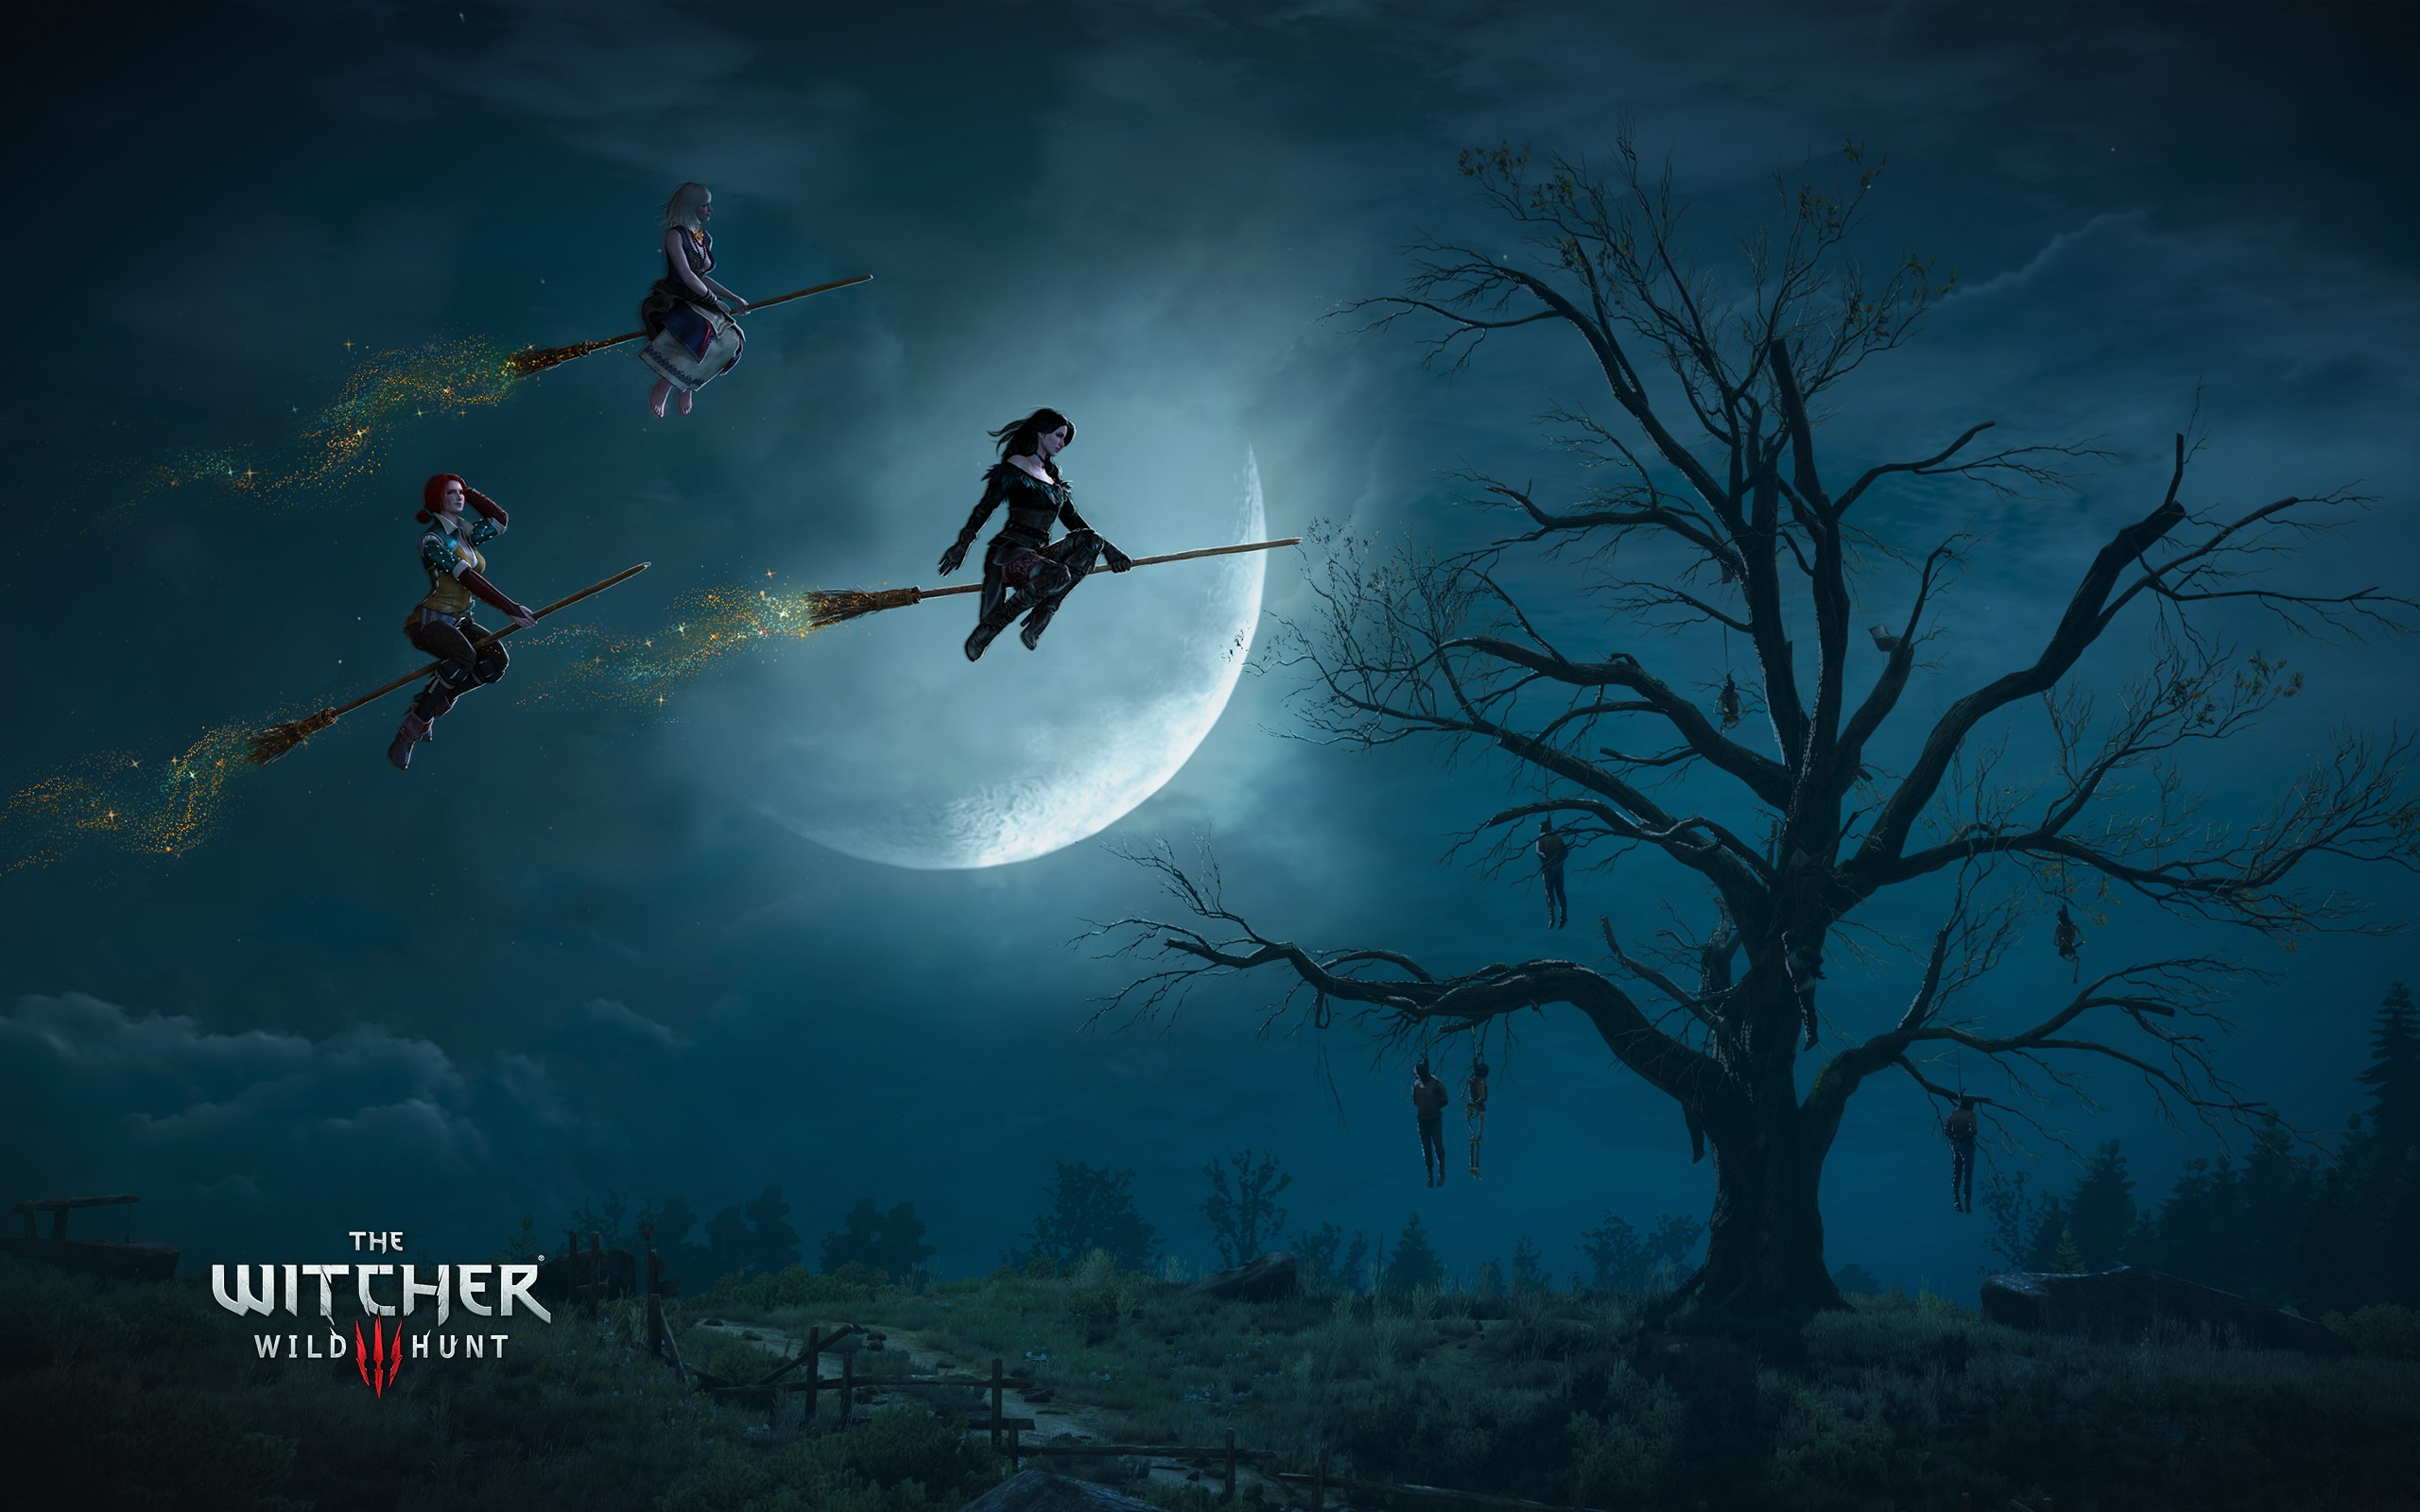 Fall Desktop Wallpaper Widescreen The Witcher 3 Wild Hunt Witches Wallpapers Hd Wallpapers